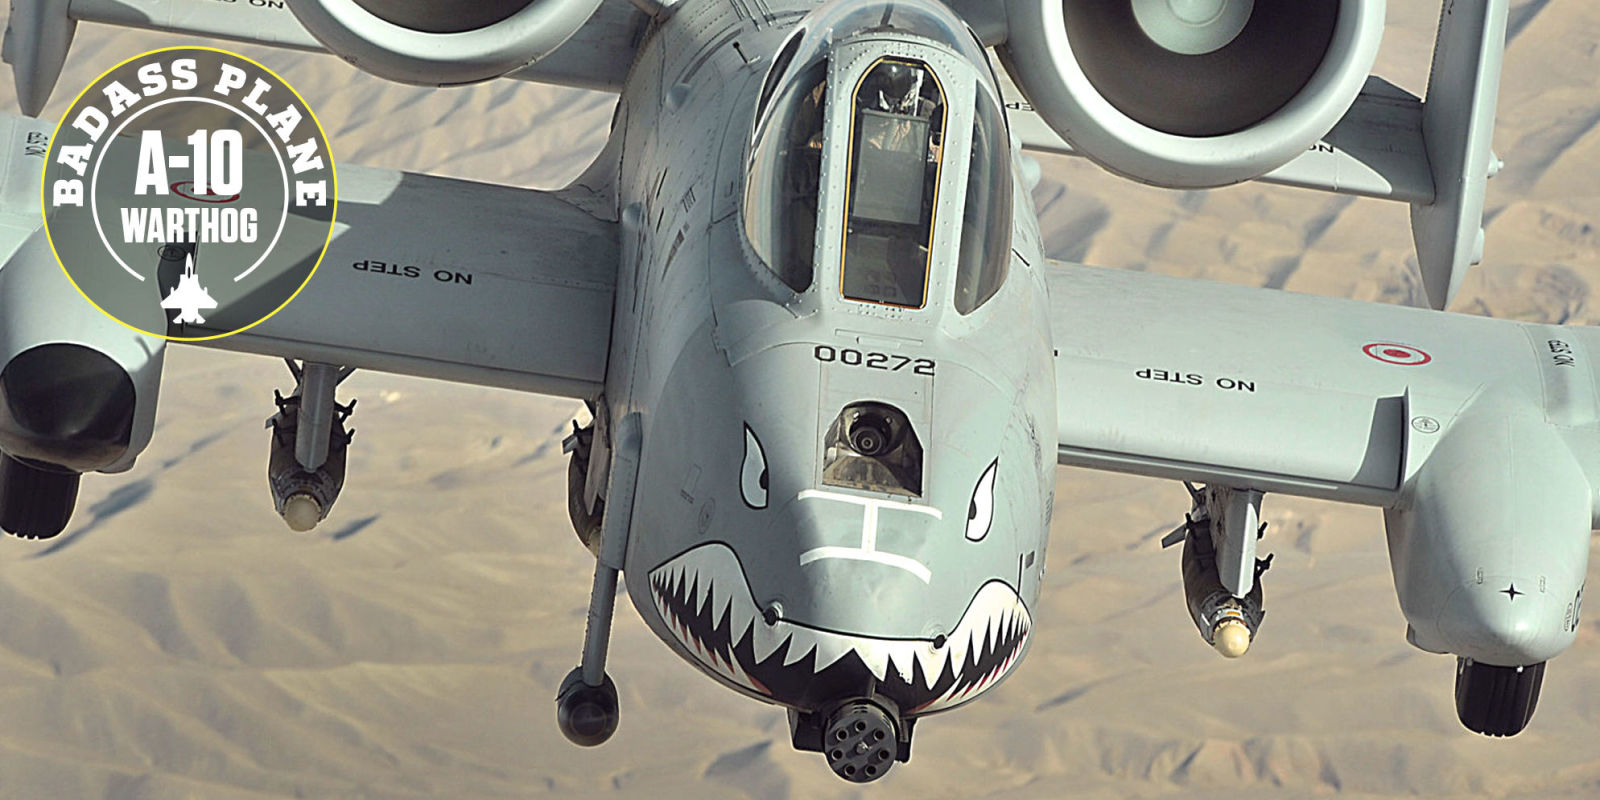 Why The A 10 Warthog Is Such A Badass Plane